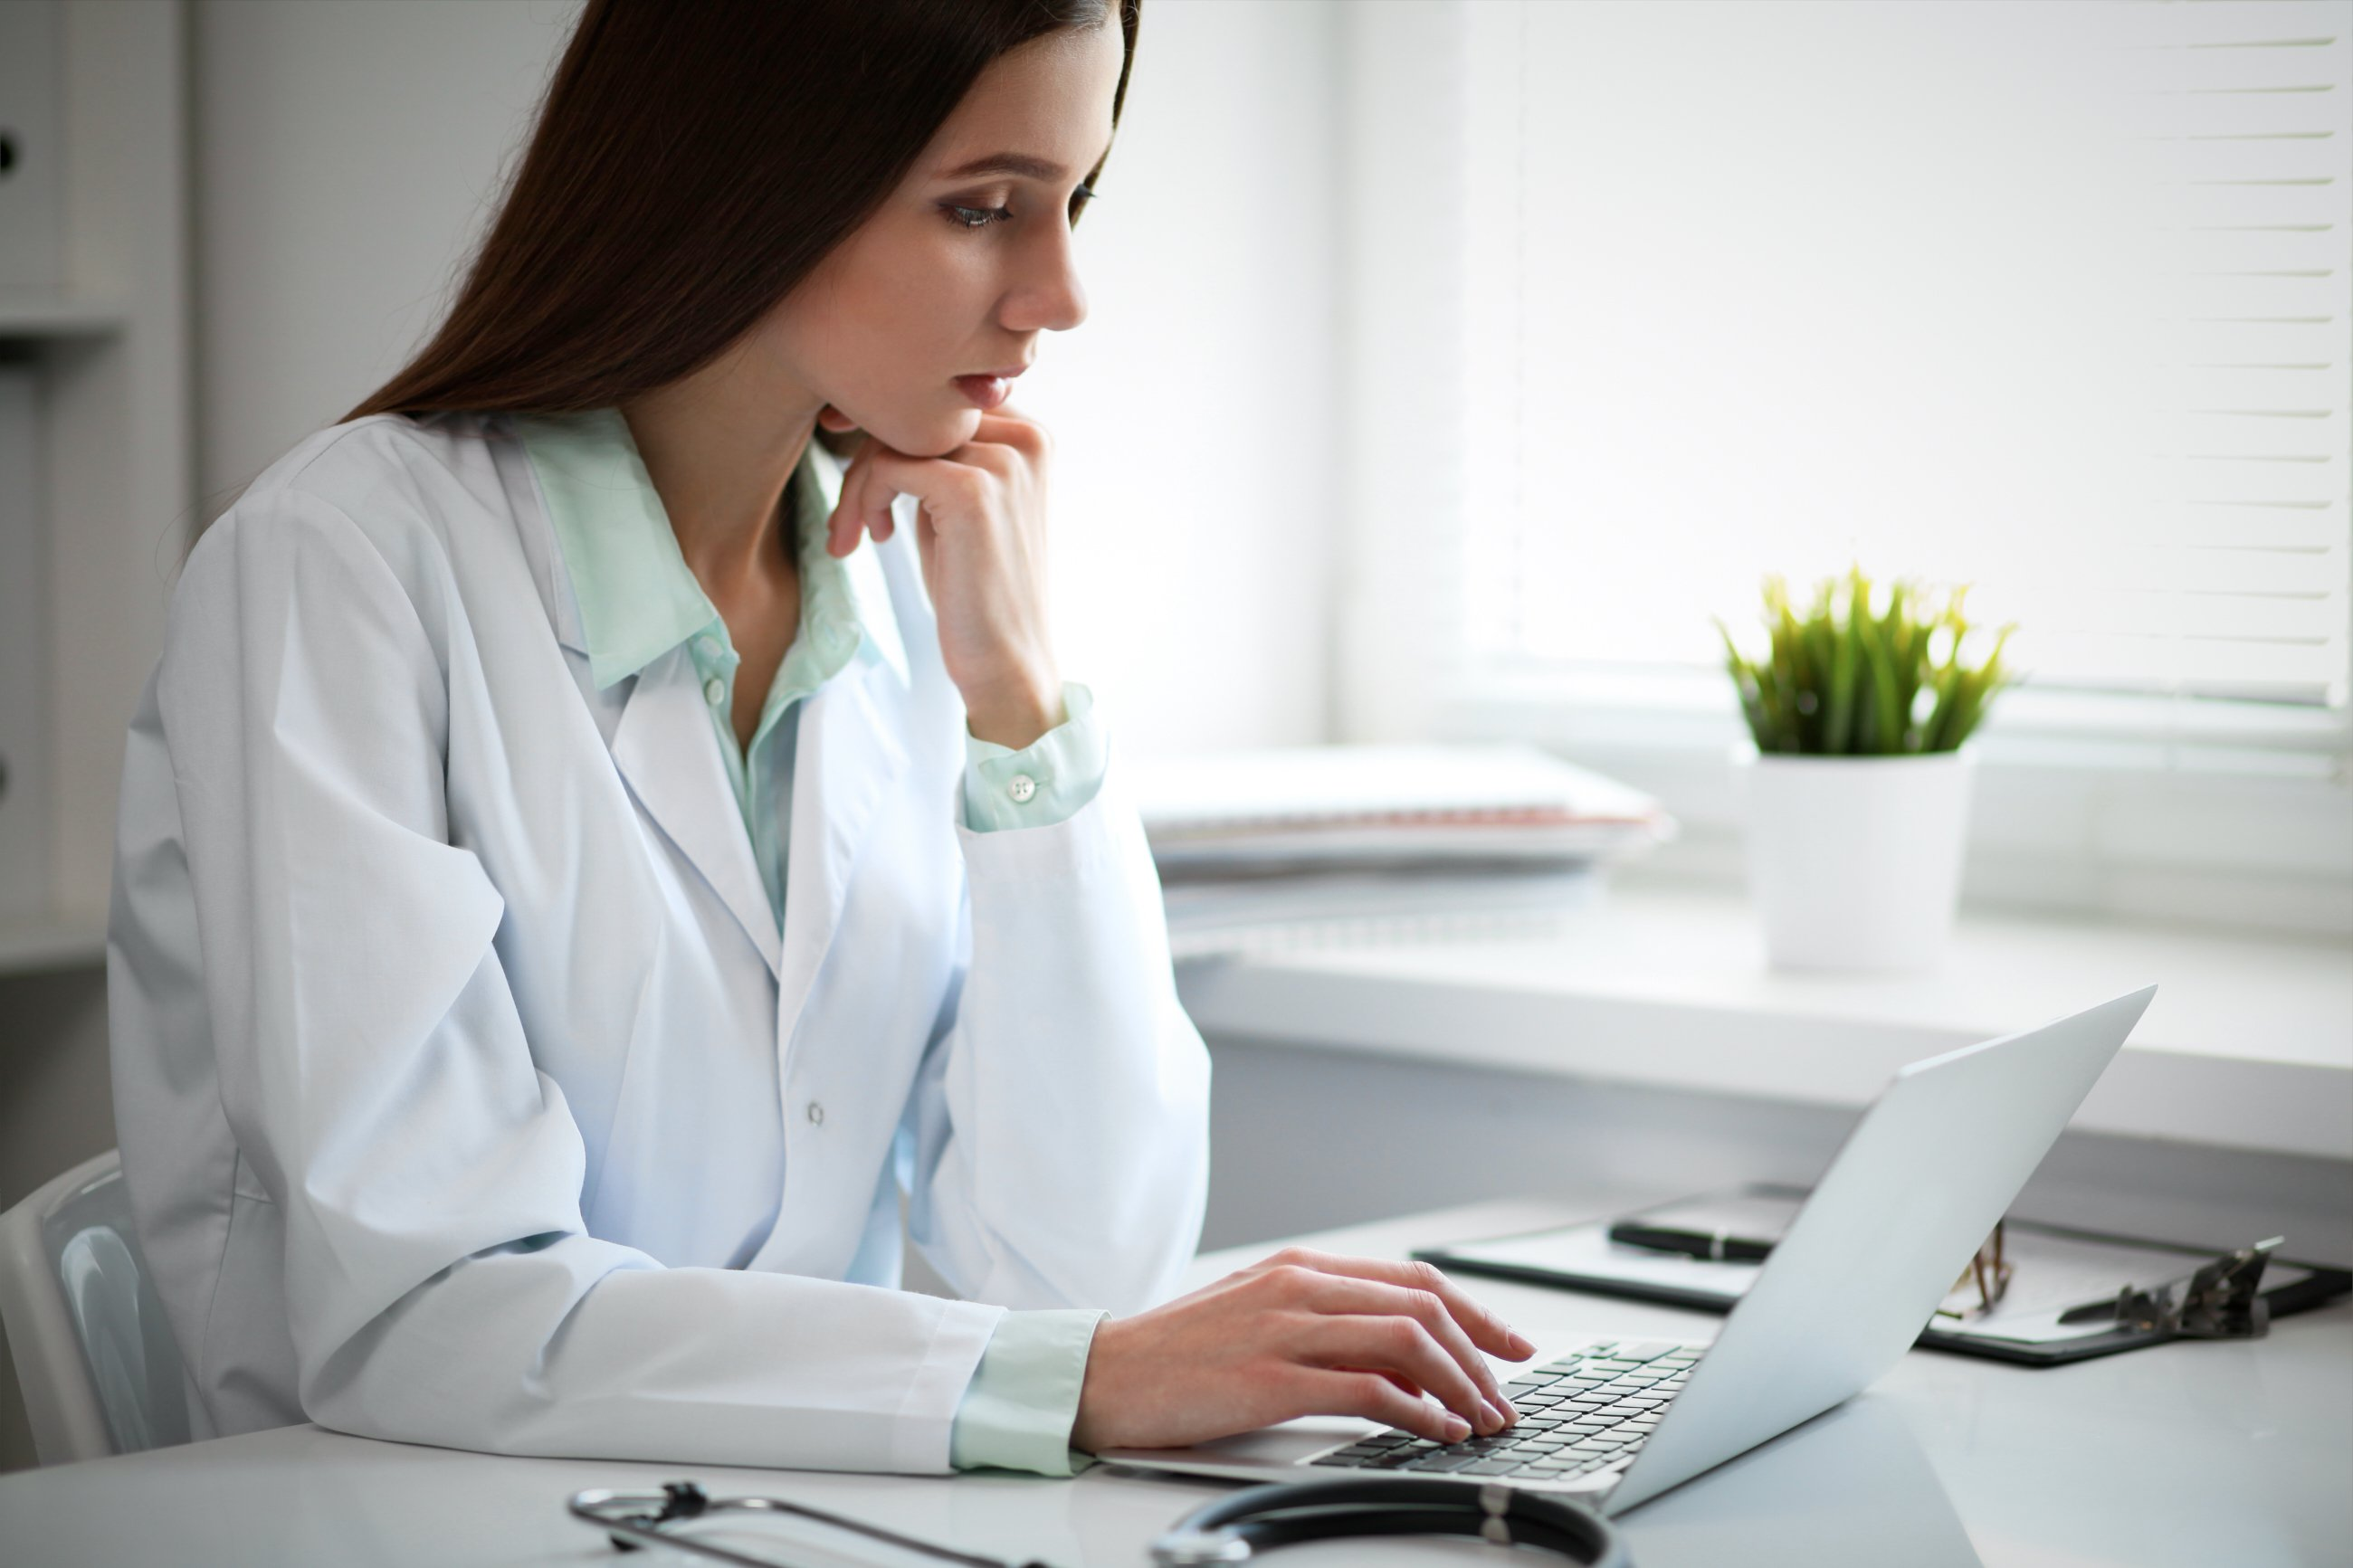 Working Locum Tenens Spotlight on EMRs EHRs